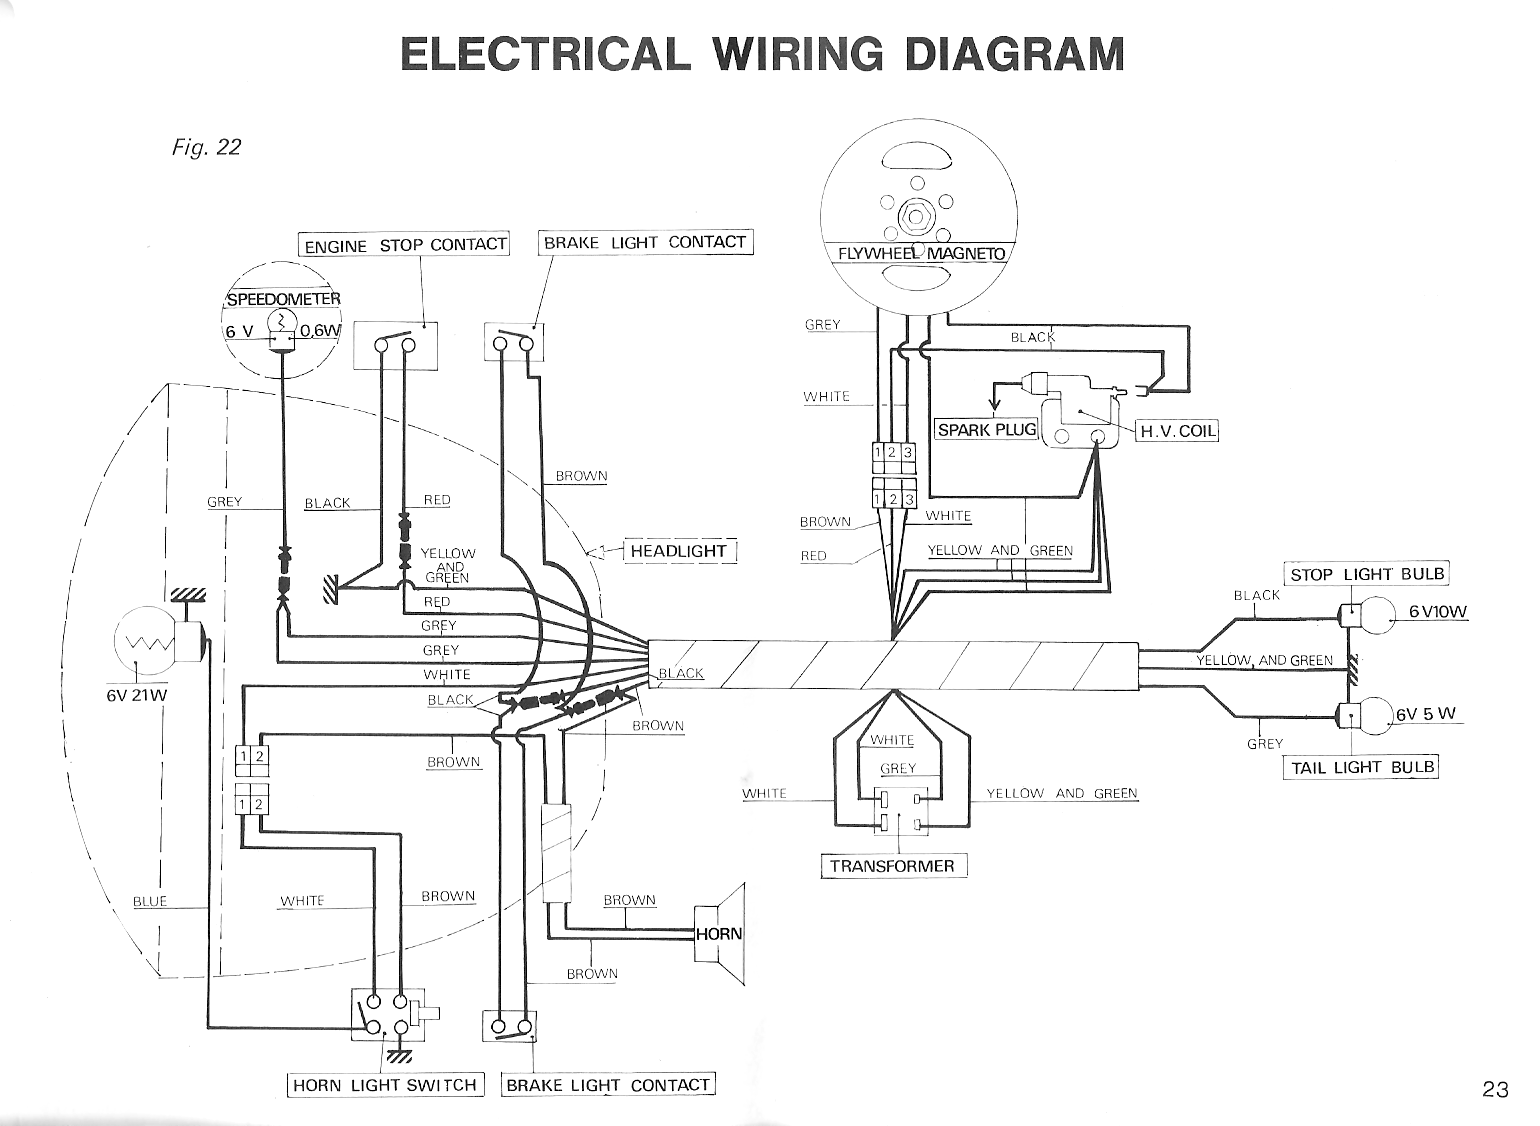 Peugeot_102_wiring_1 peugeot wiring diagrams moped wiki moped ignition wiring diagram at bayanpartner.co